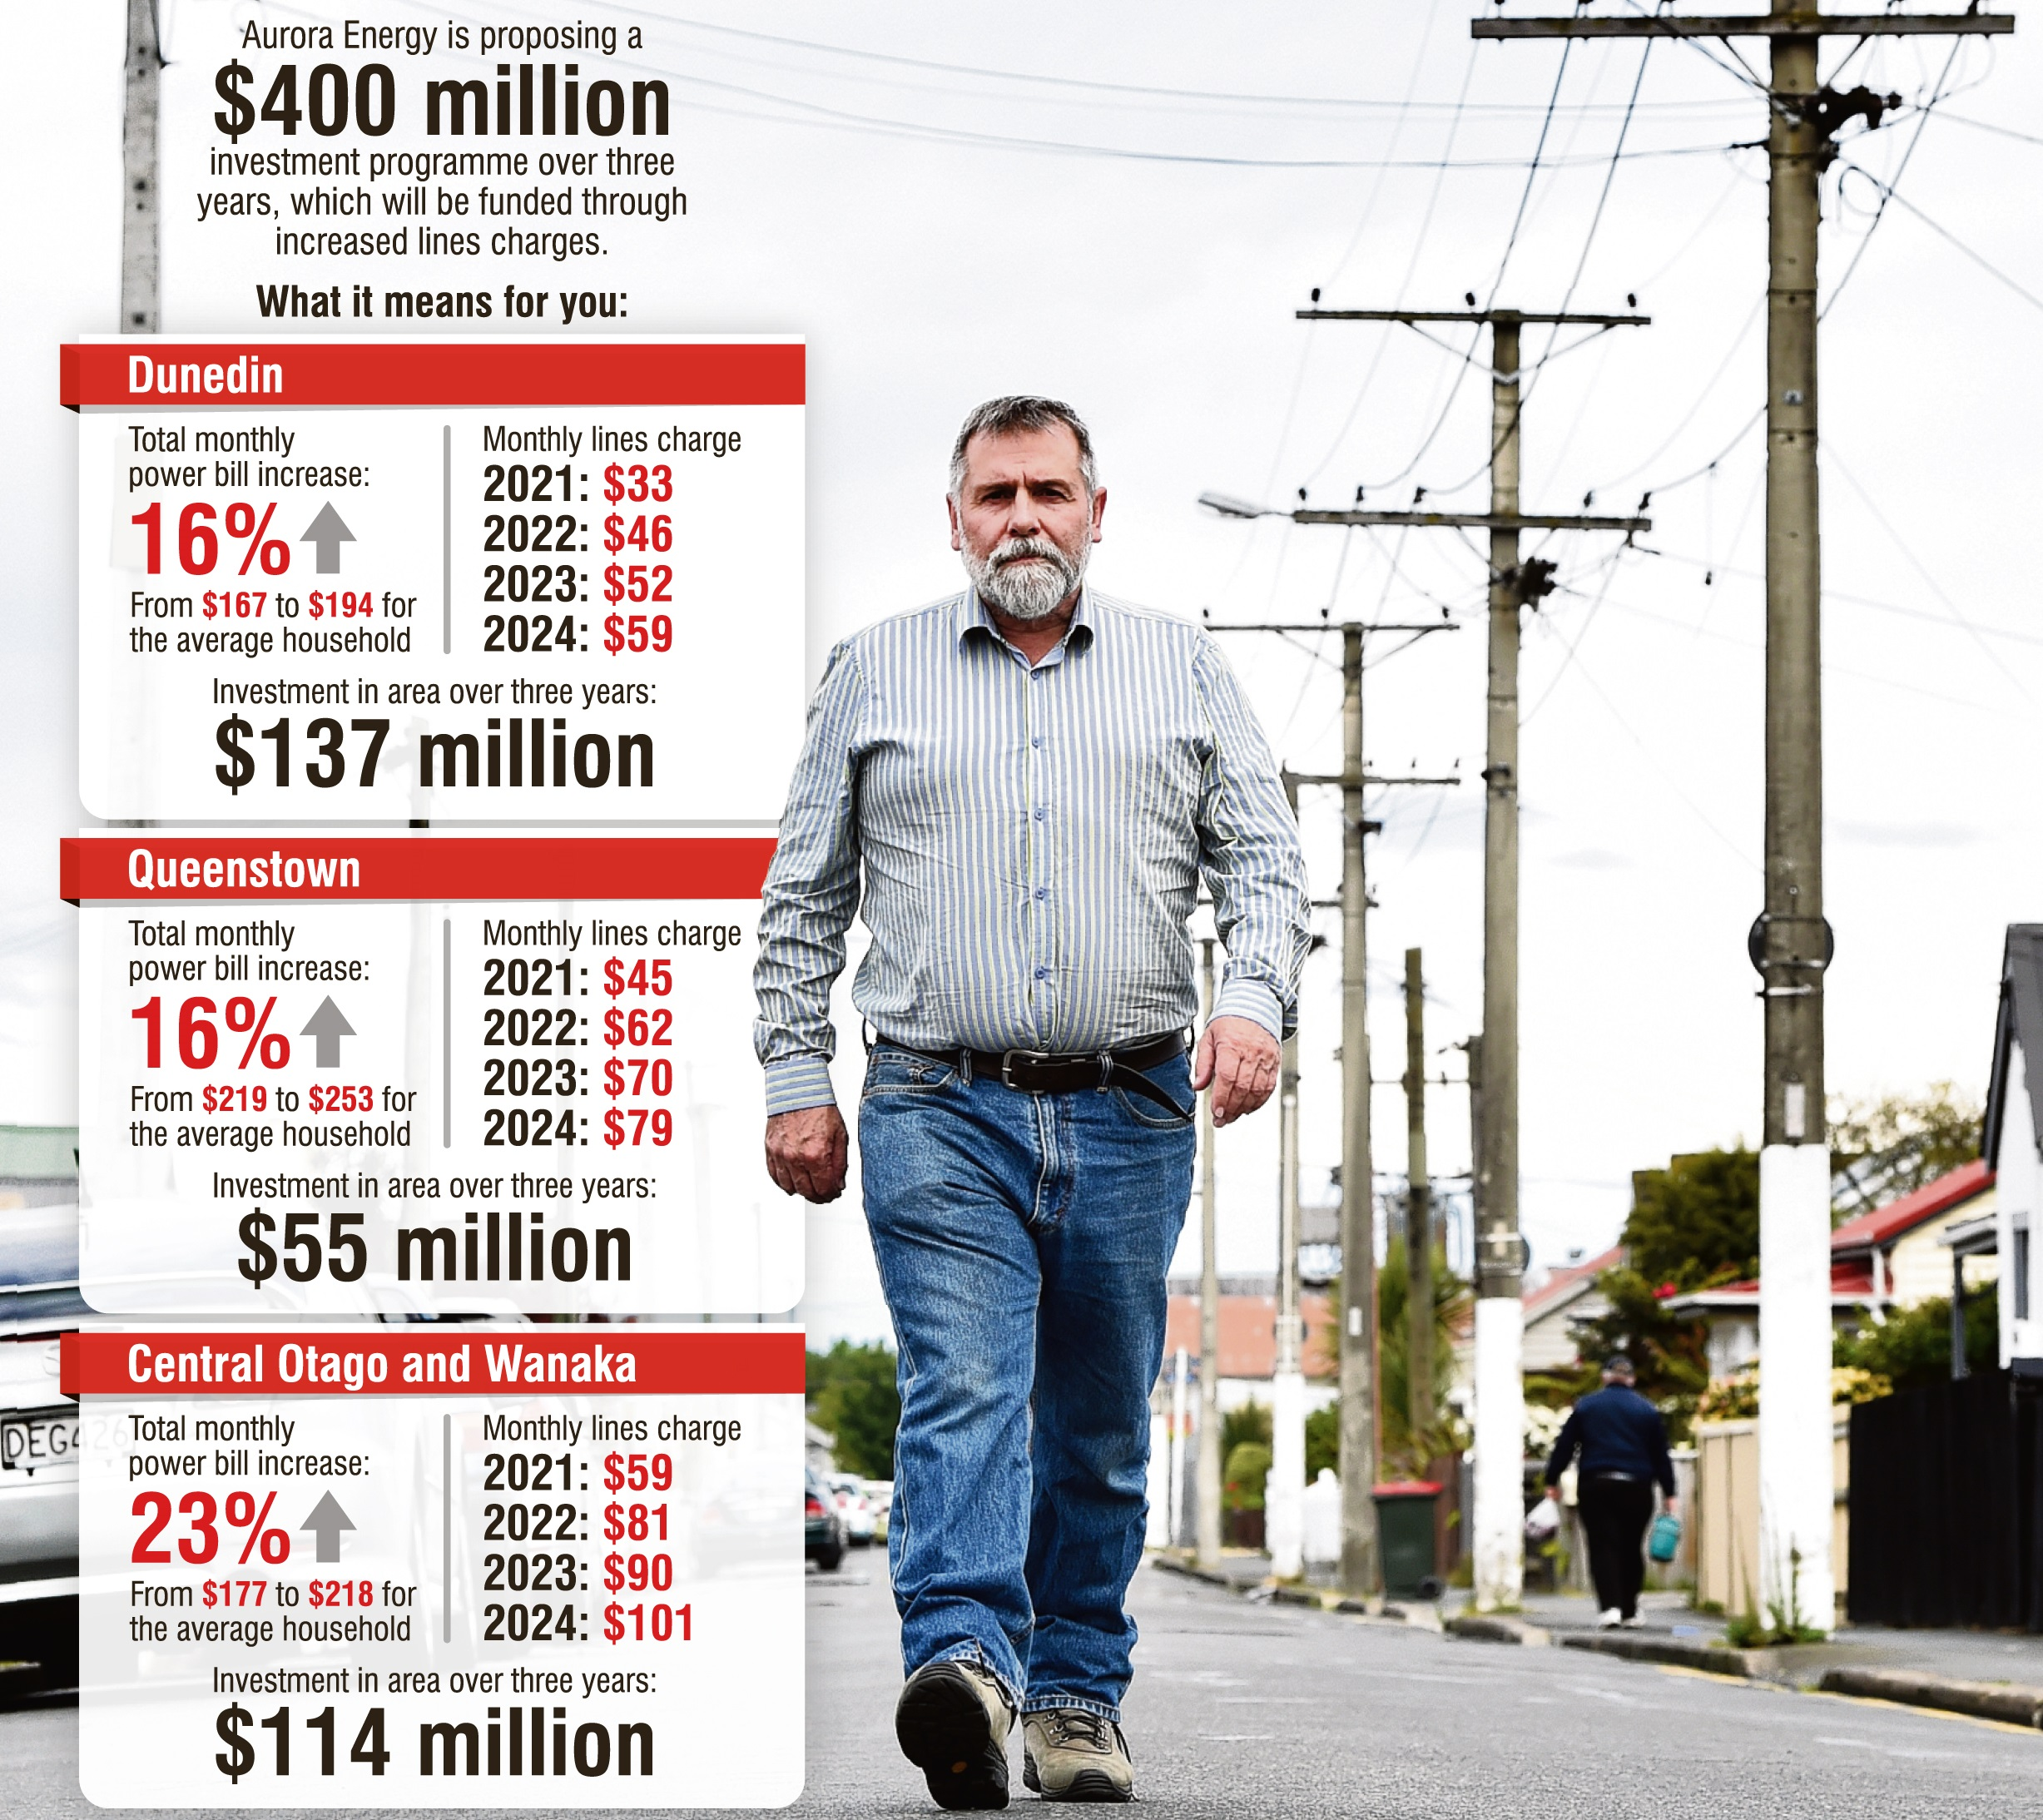 Aurora Energy whistleblower Richard Healey, pictured walking down Bradshaw St in South Dunedin, was unimpressed with yesterday's pricing announcement. Photo: Peter McIntosh